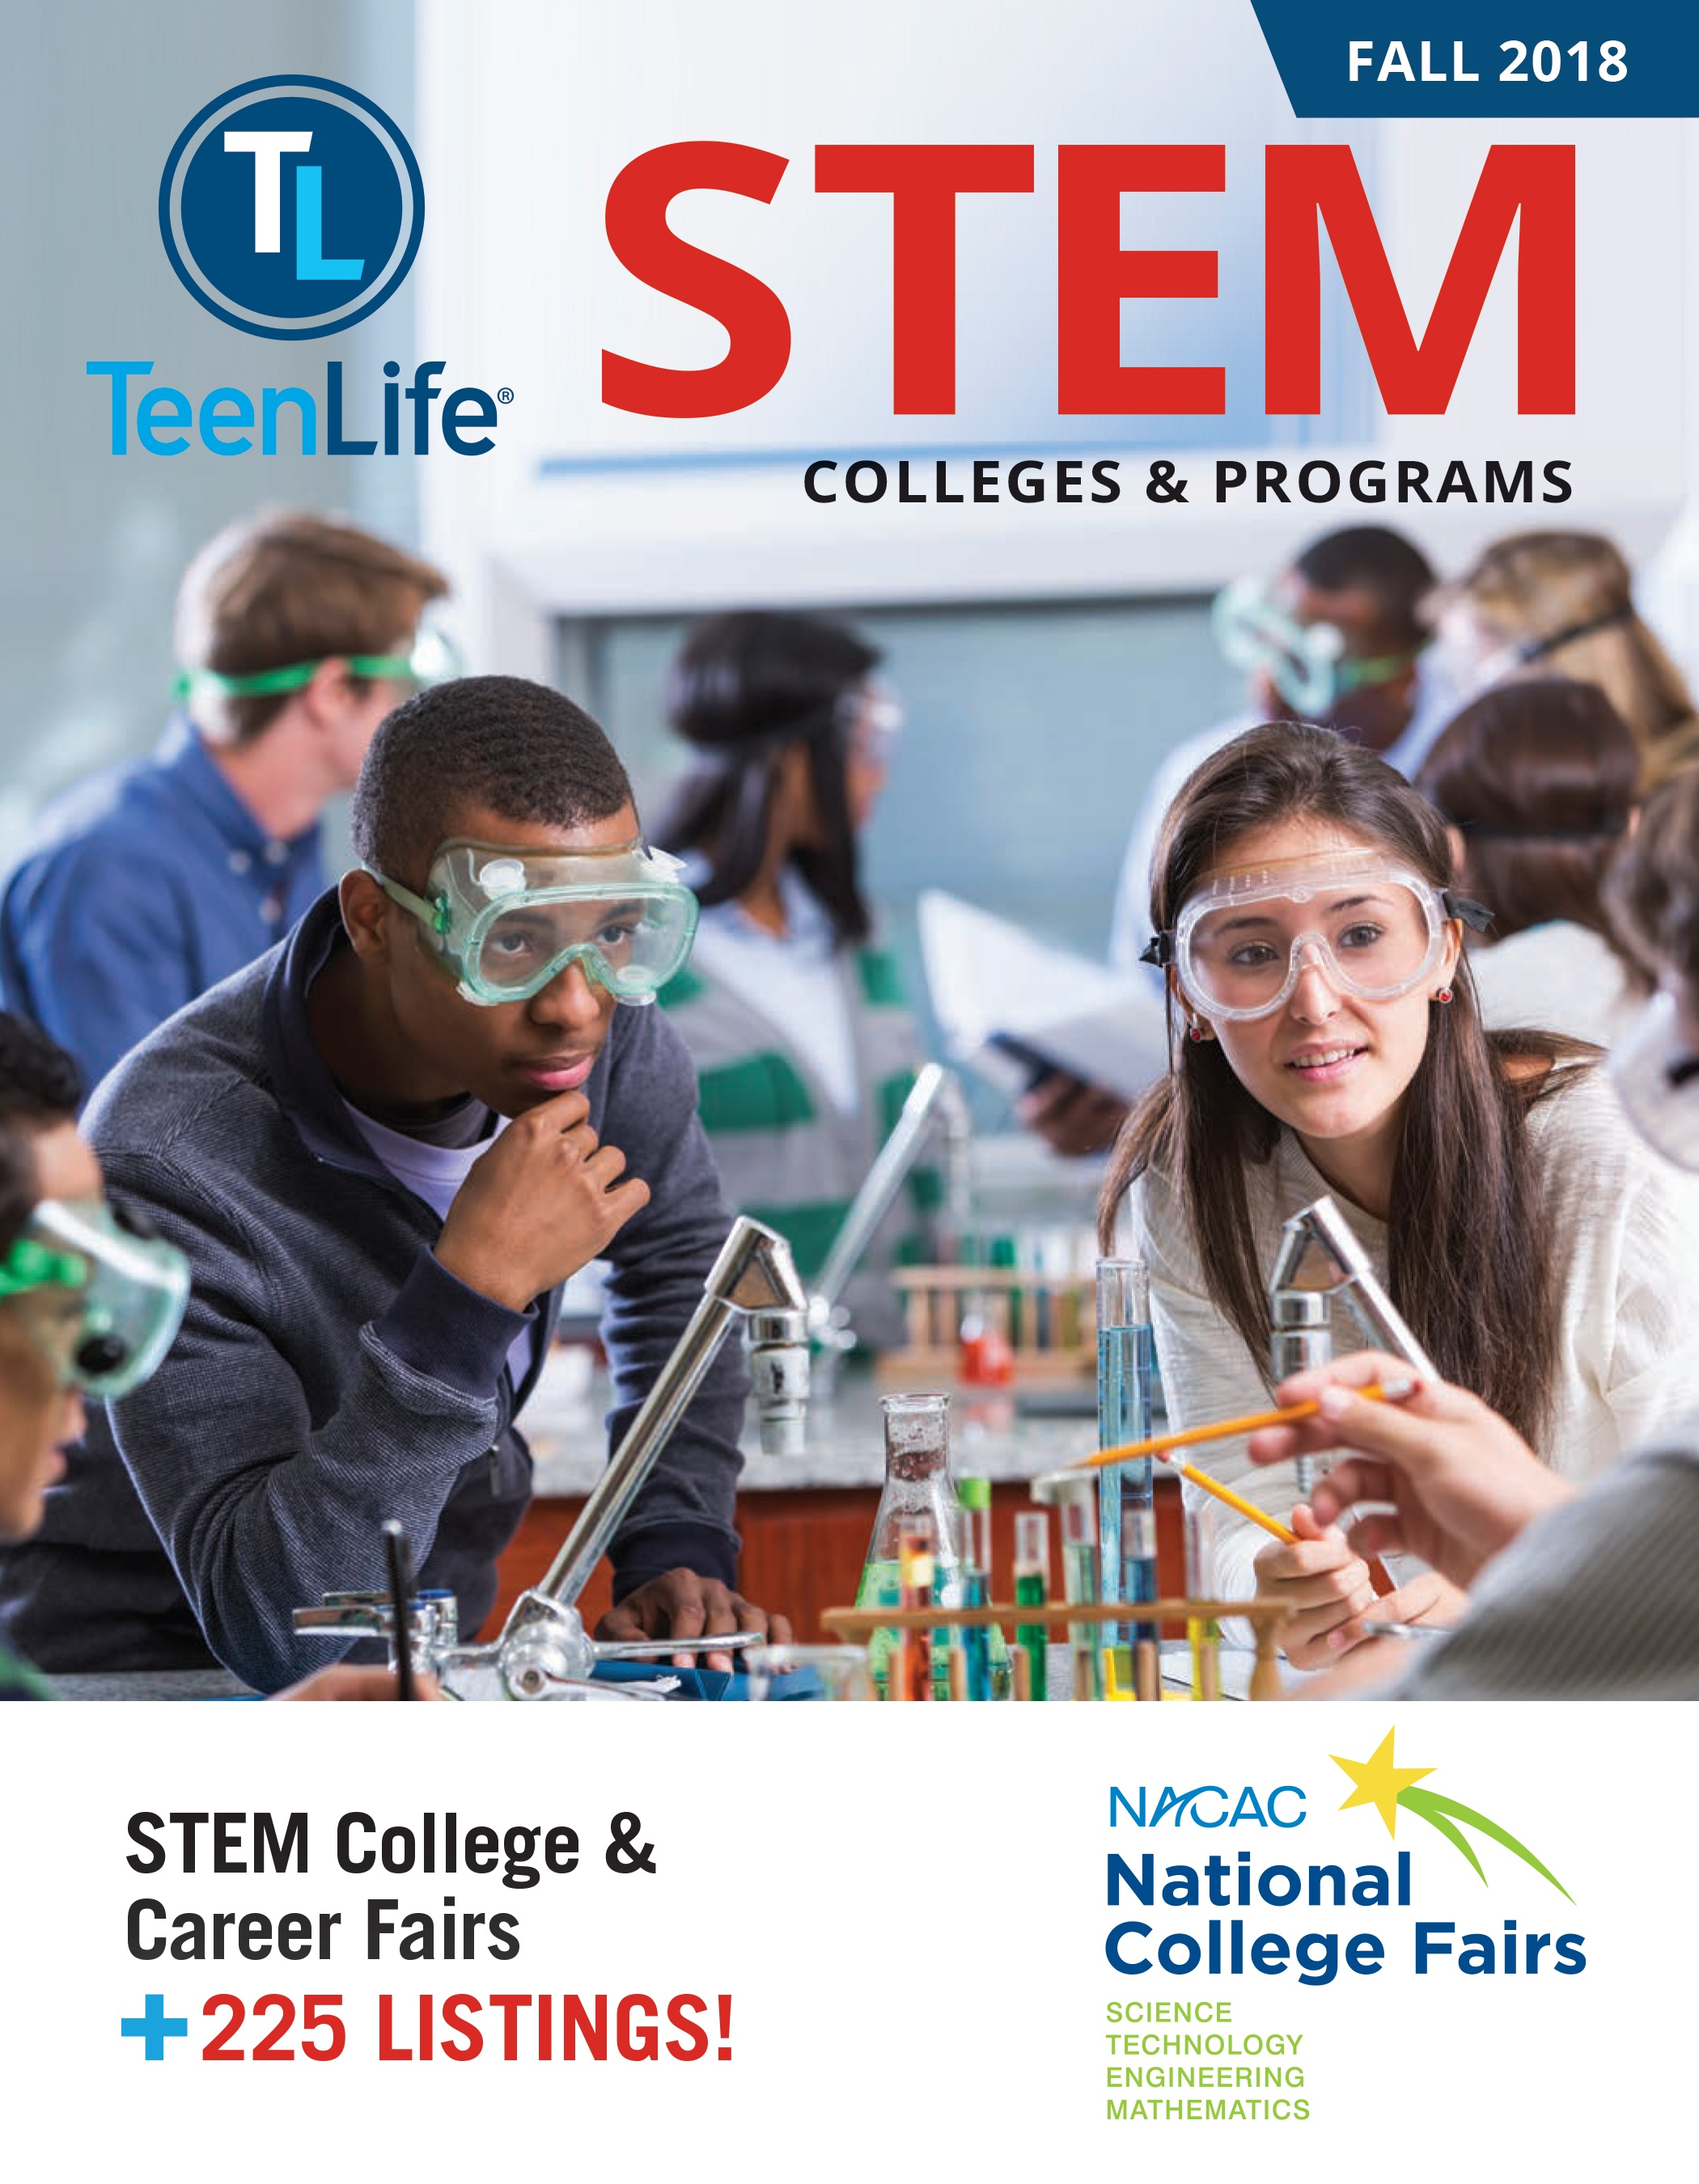 Guide to STEM Colleges & Programs